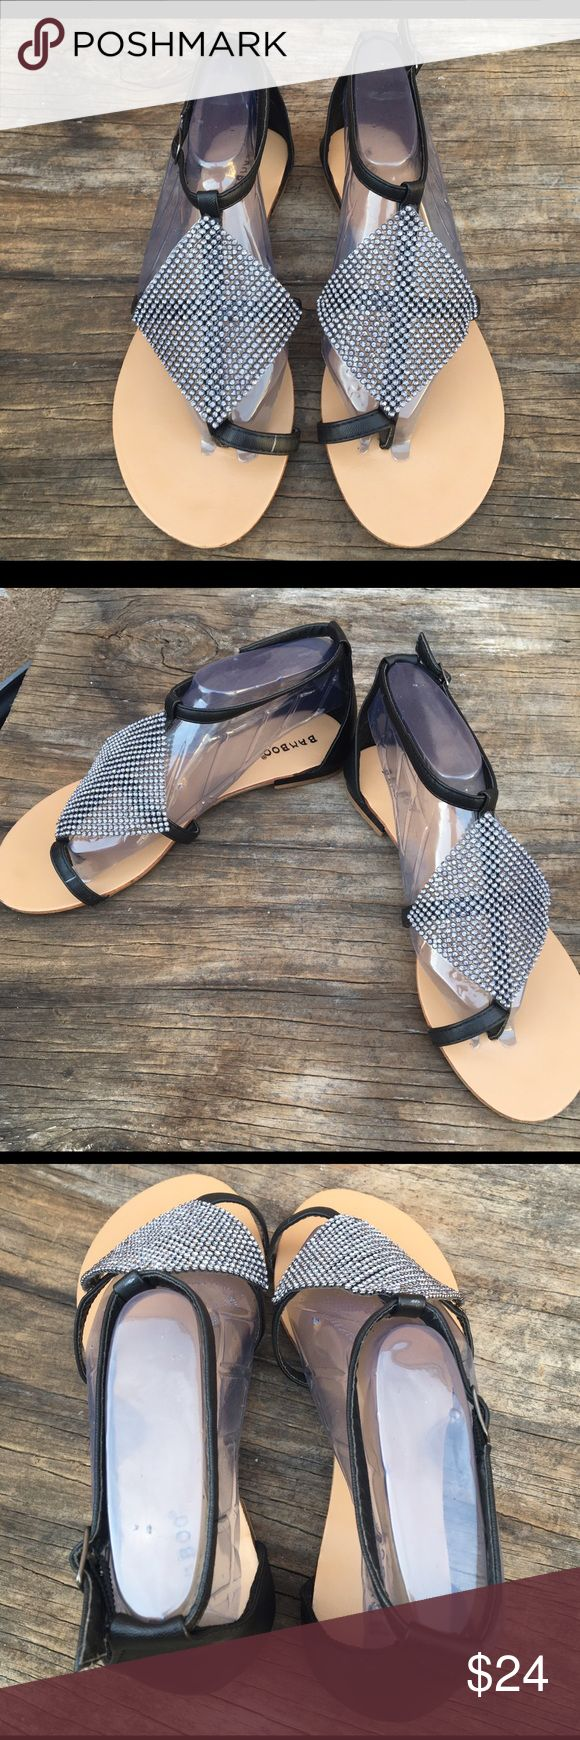 Bamboo women sandals Beautiful tan sandals with black tongue with awesome stones on it bamboo Shoes Sandals